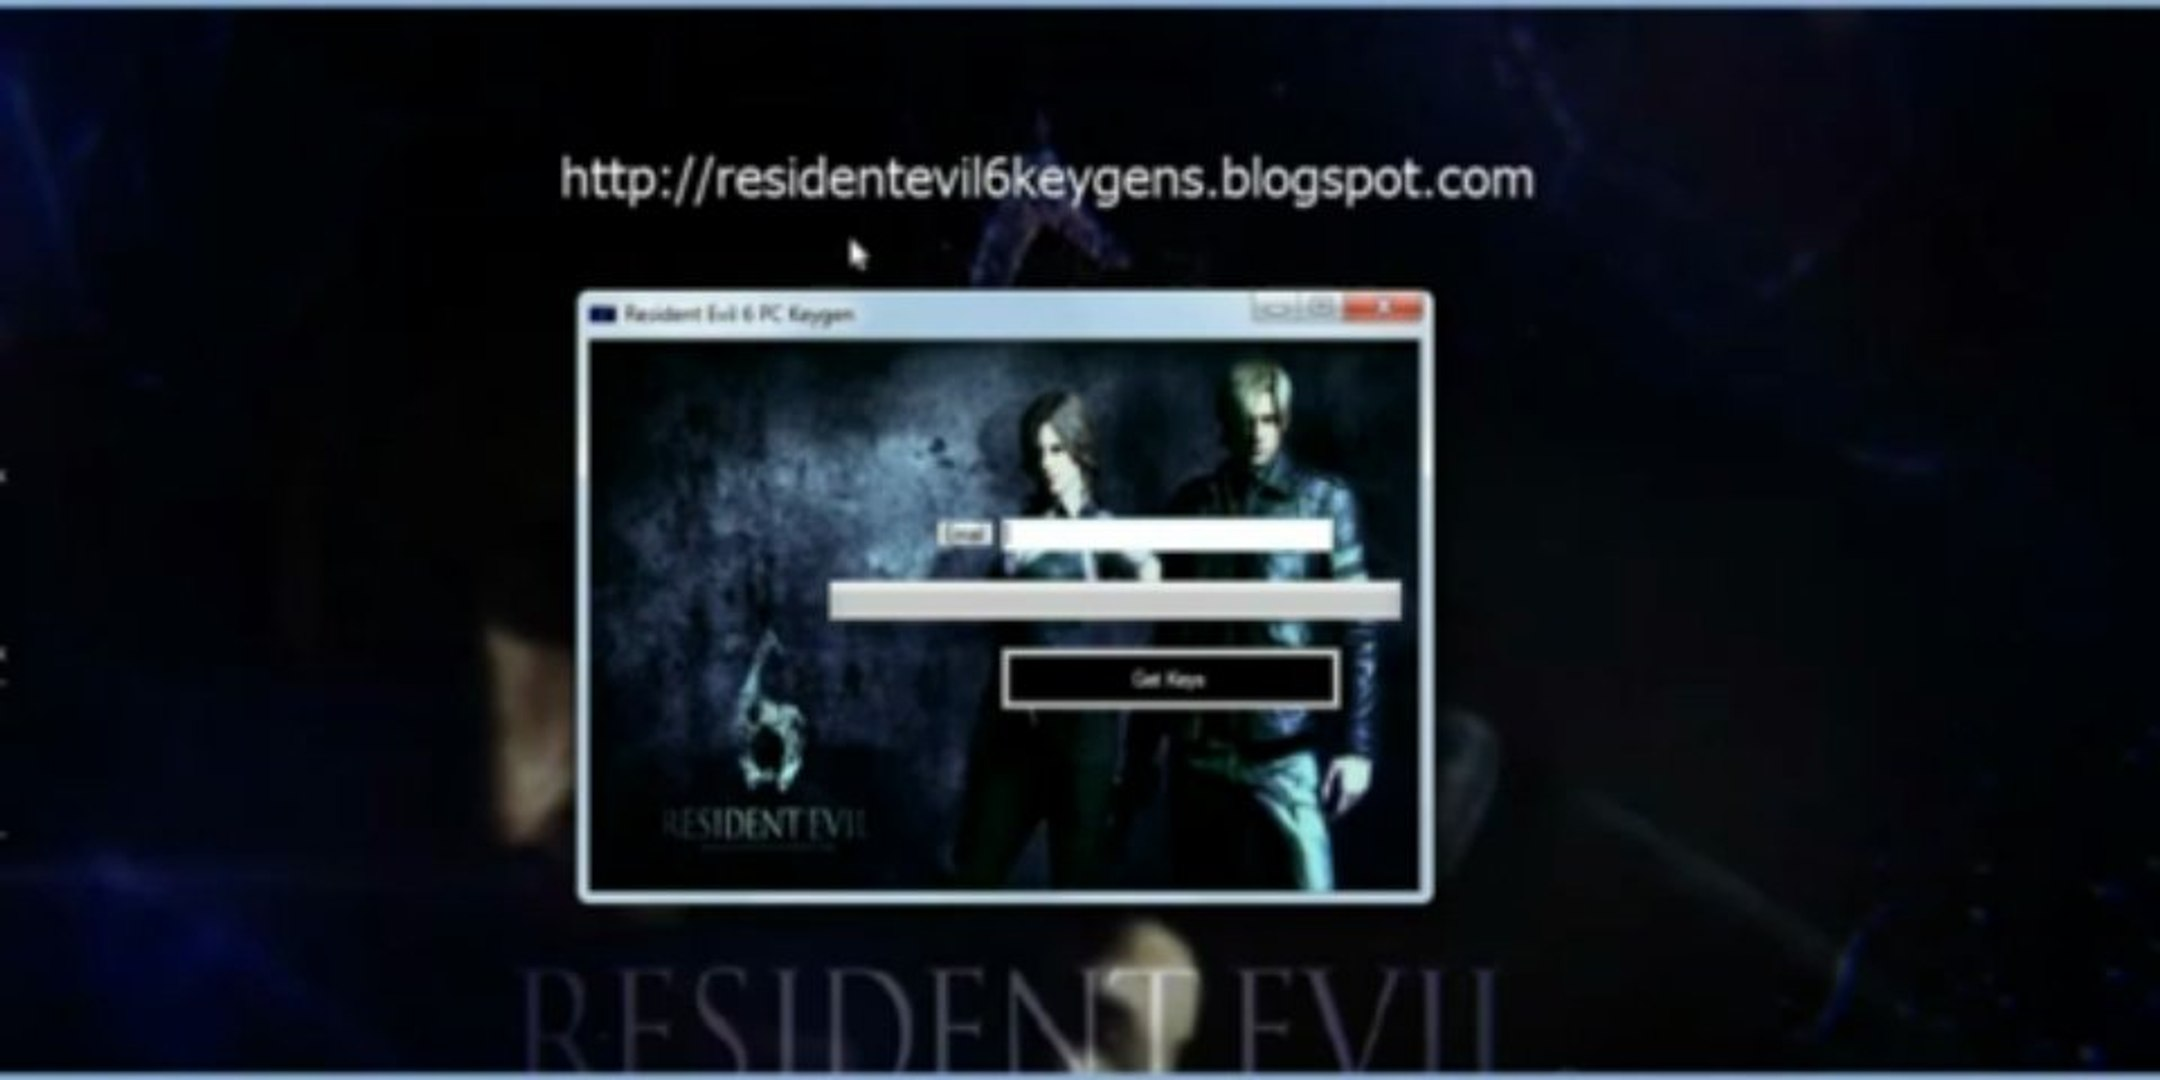 resident evil 6 cracked steam download